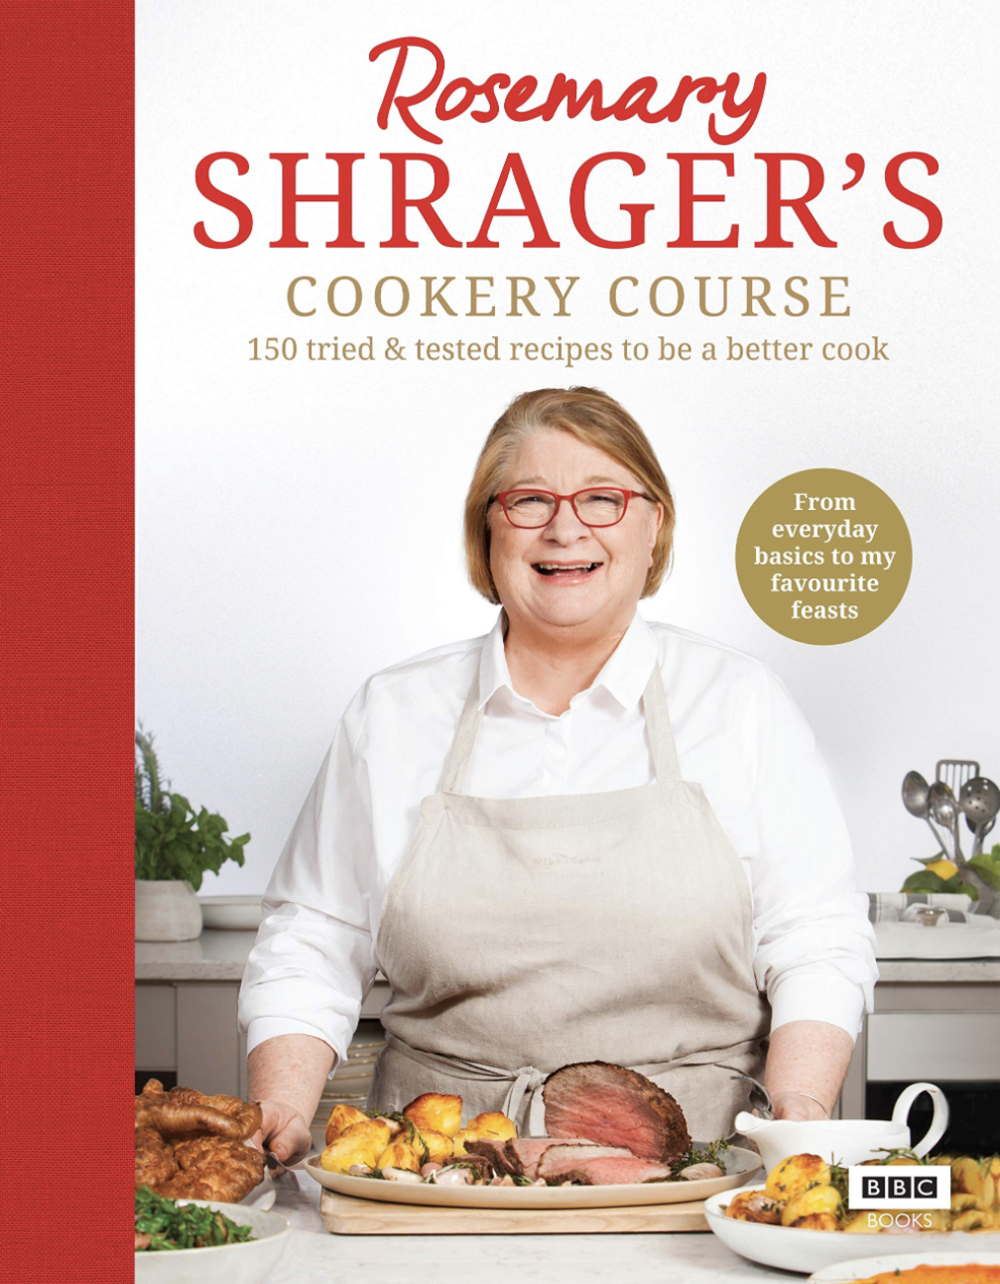 ROSEMARY SHRAGER'S COOKERY COURSE - DESERT ISLAND DISHES - MARGIE NOMURA